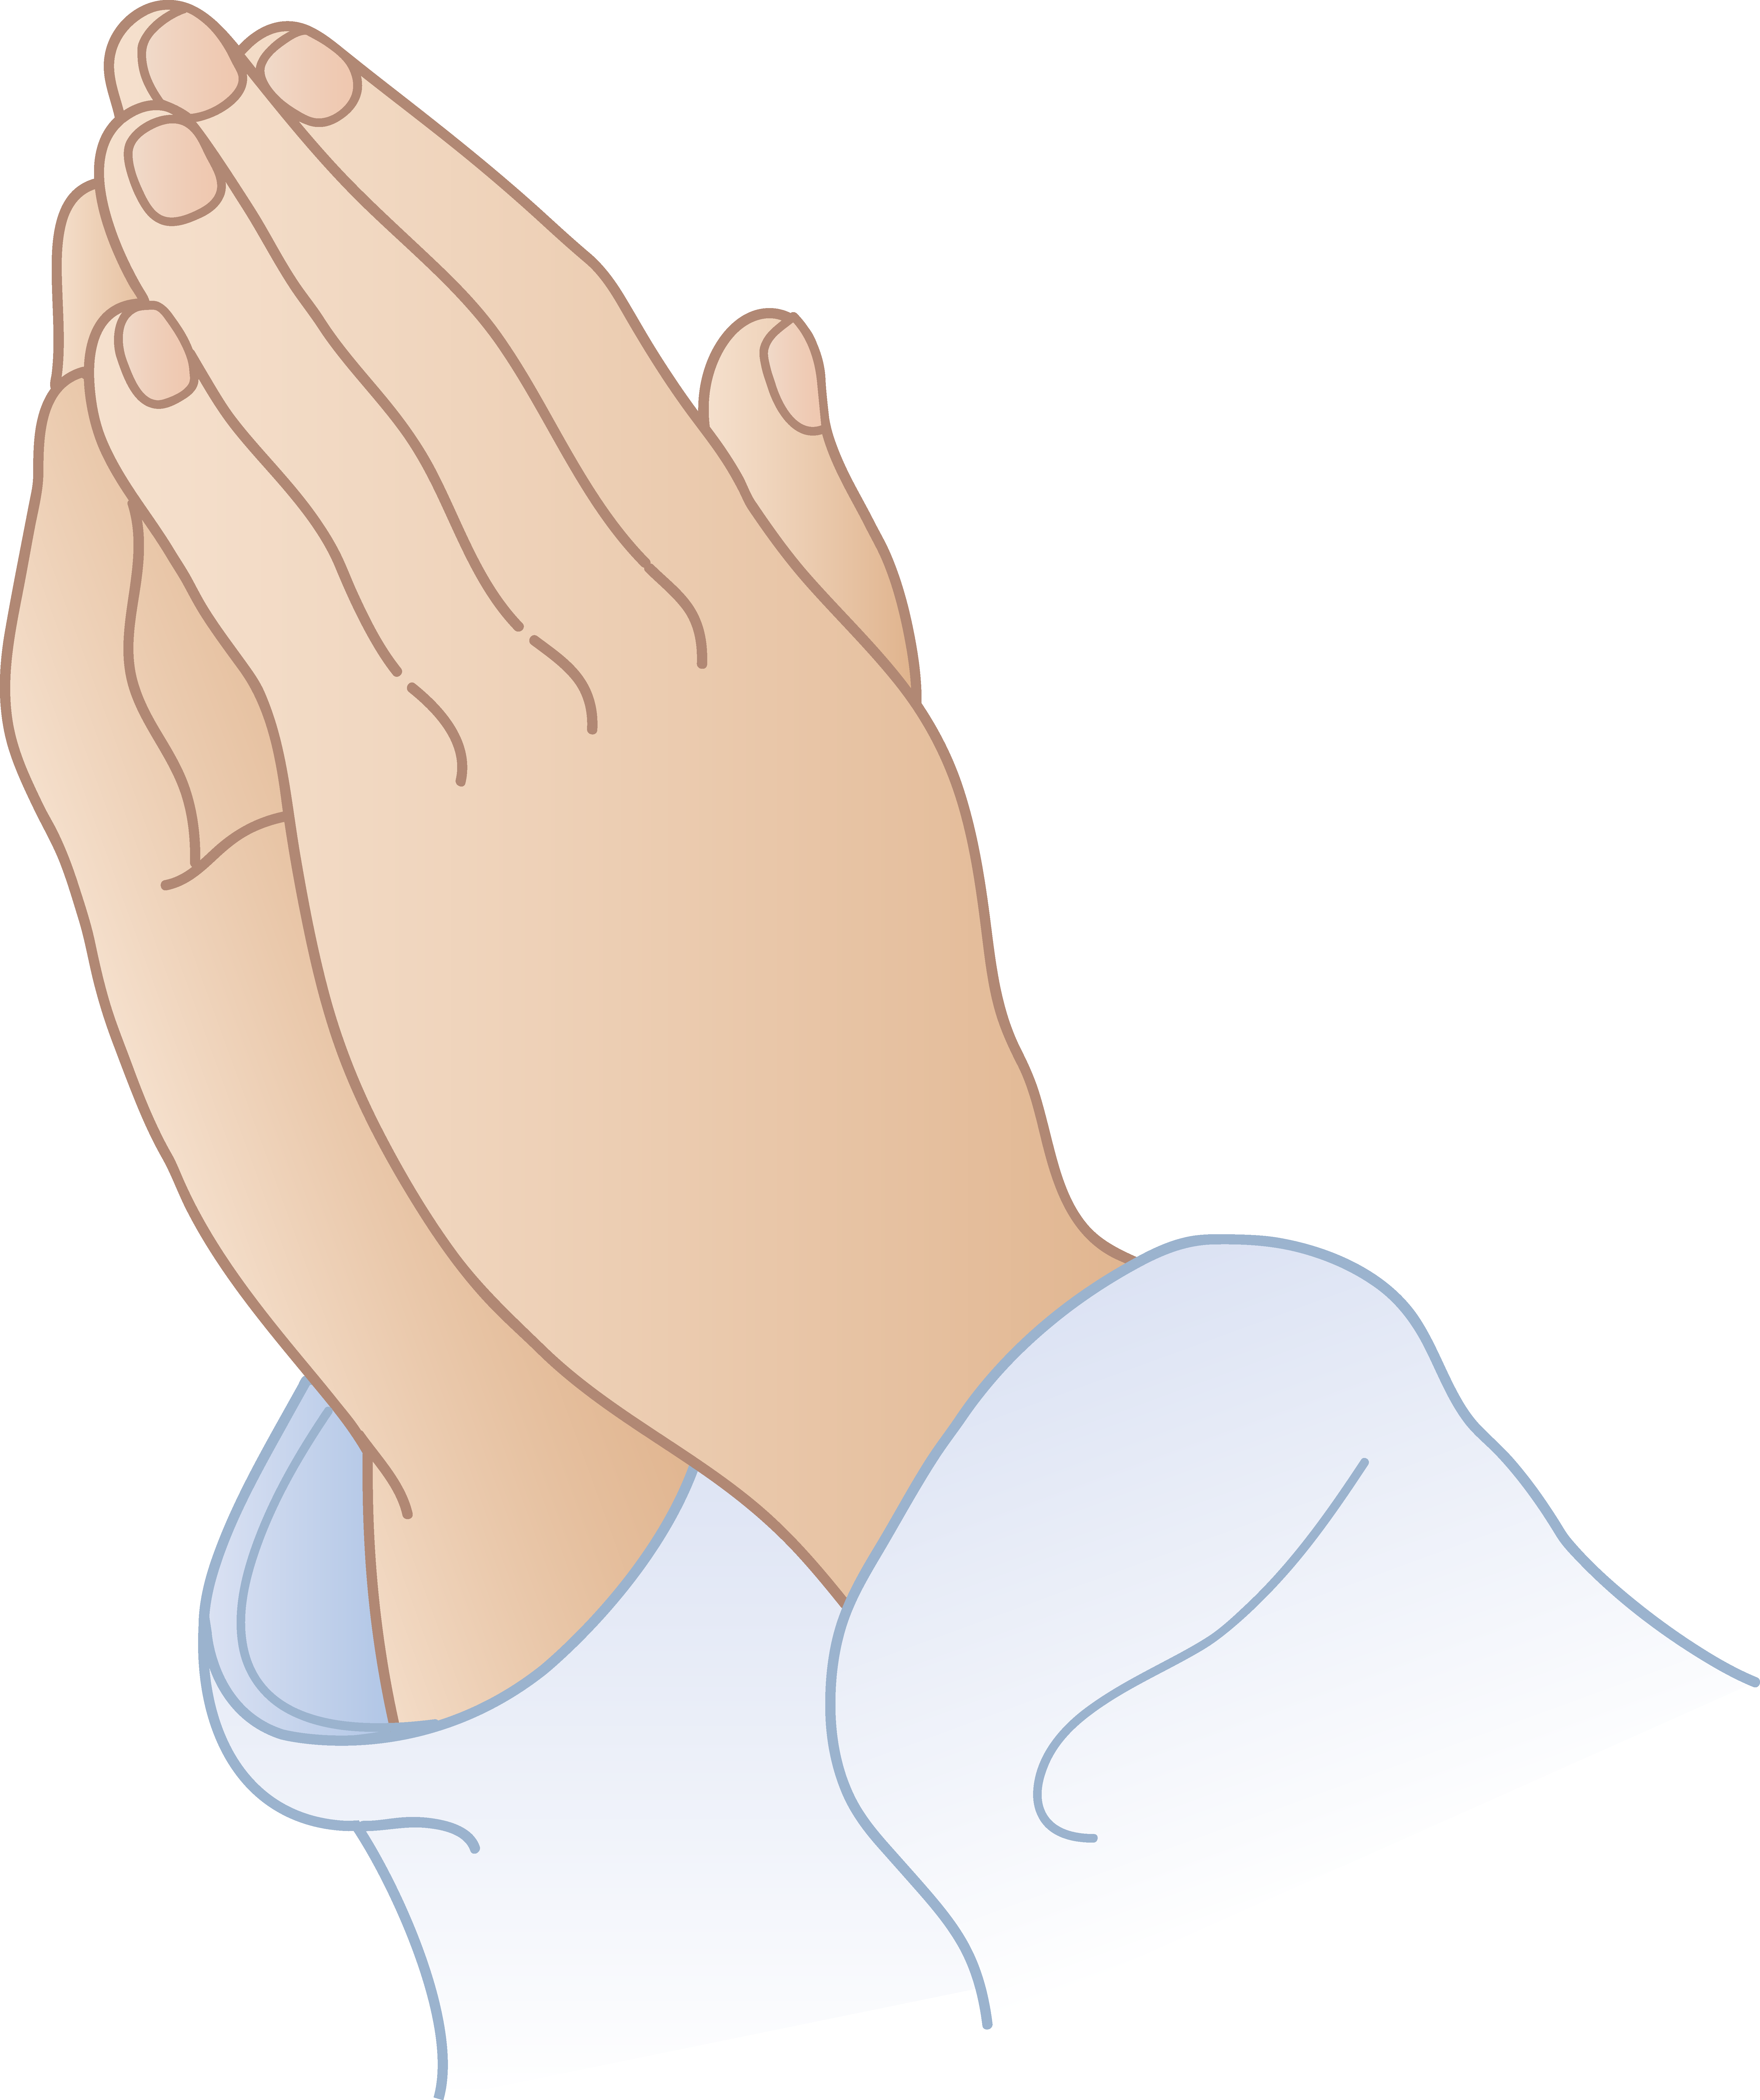 Prayer vector animated. Praying hands clipart for